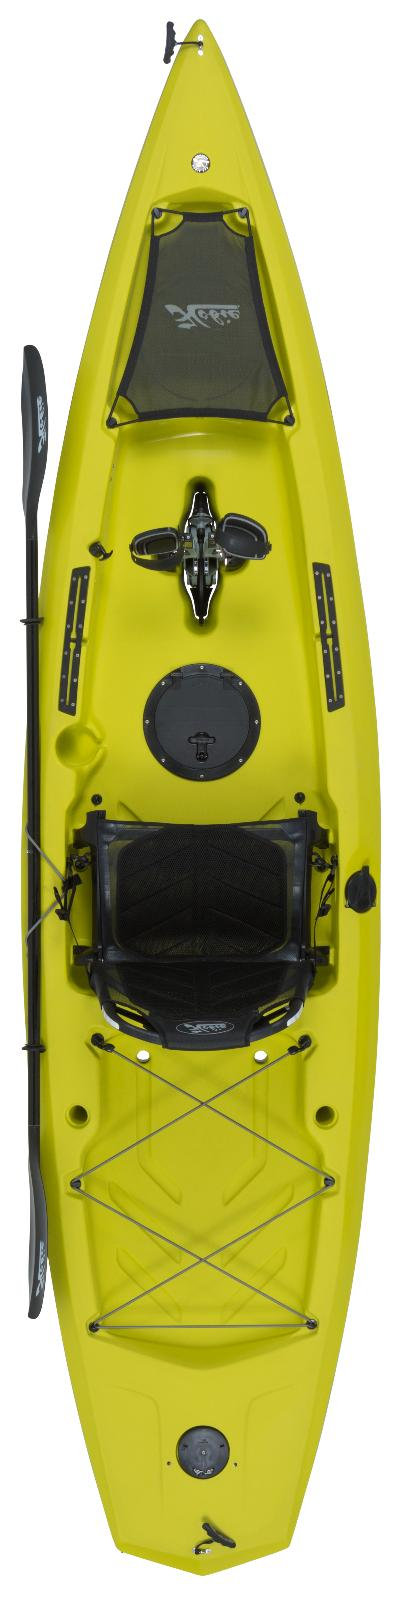 2018 Hobie Mirage Pedal Fishing Seagrass